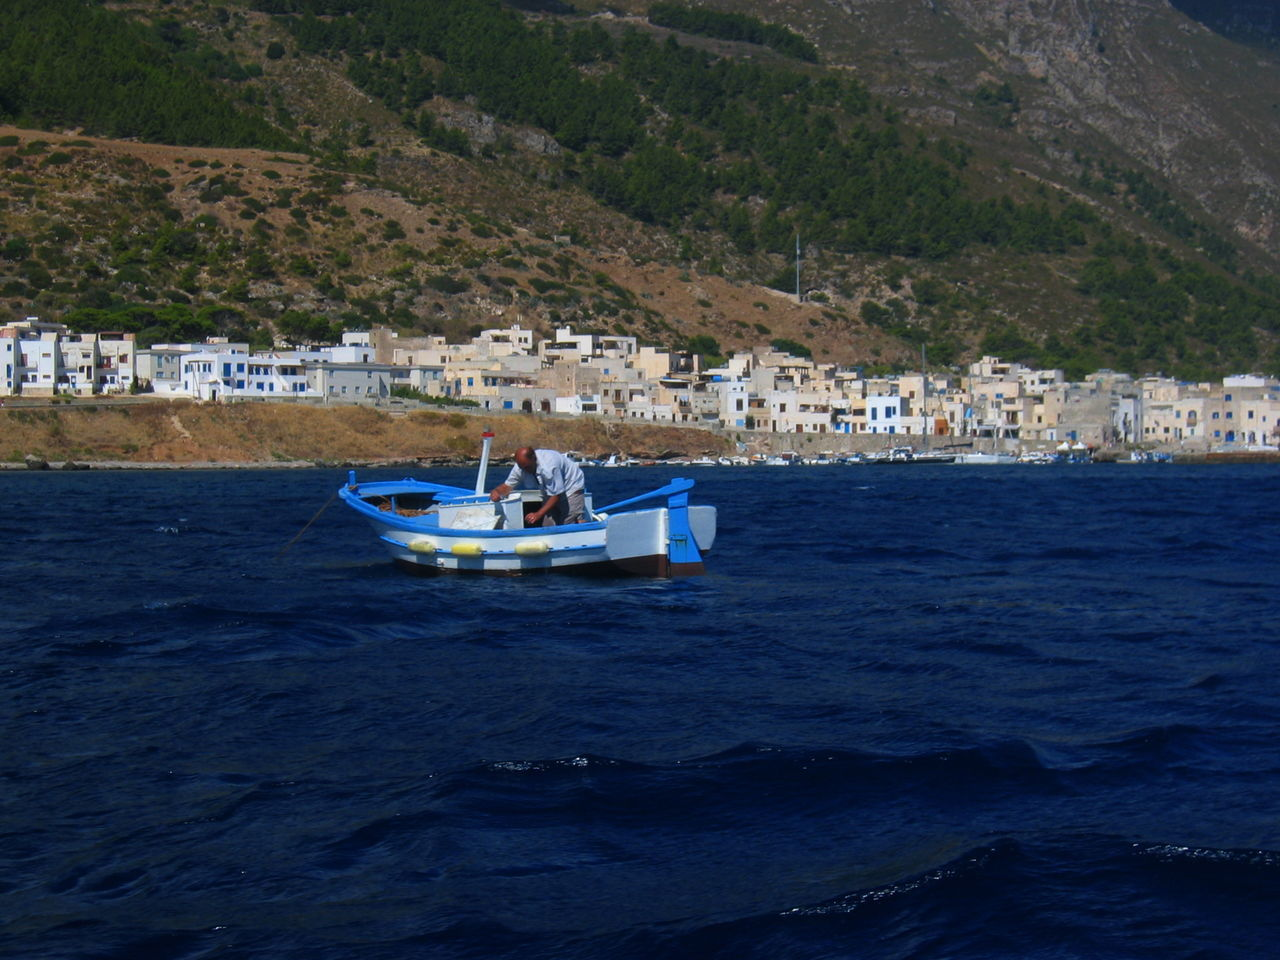 Boat Day Daylight Fisherman Marettimo Island Mountain Nature Scenics Sea Water Waterfront